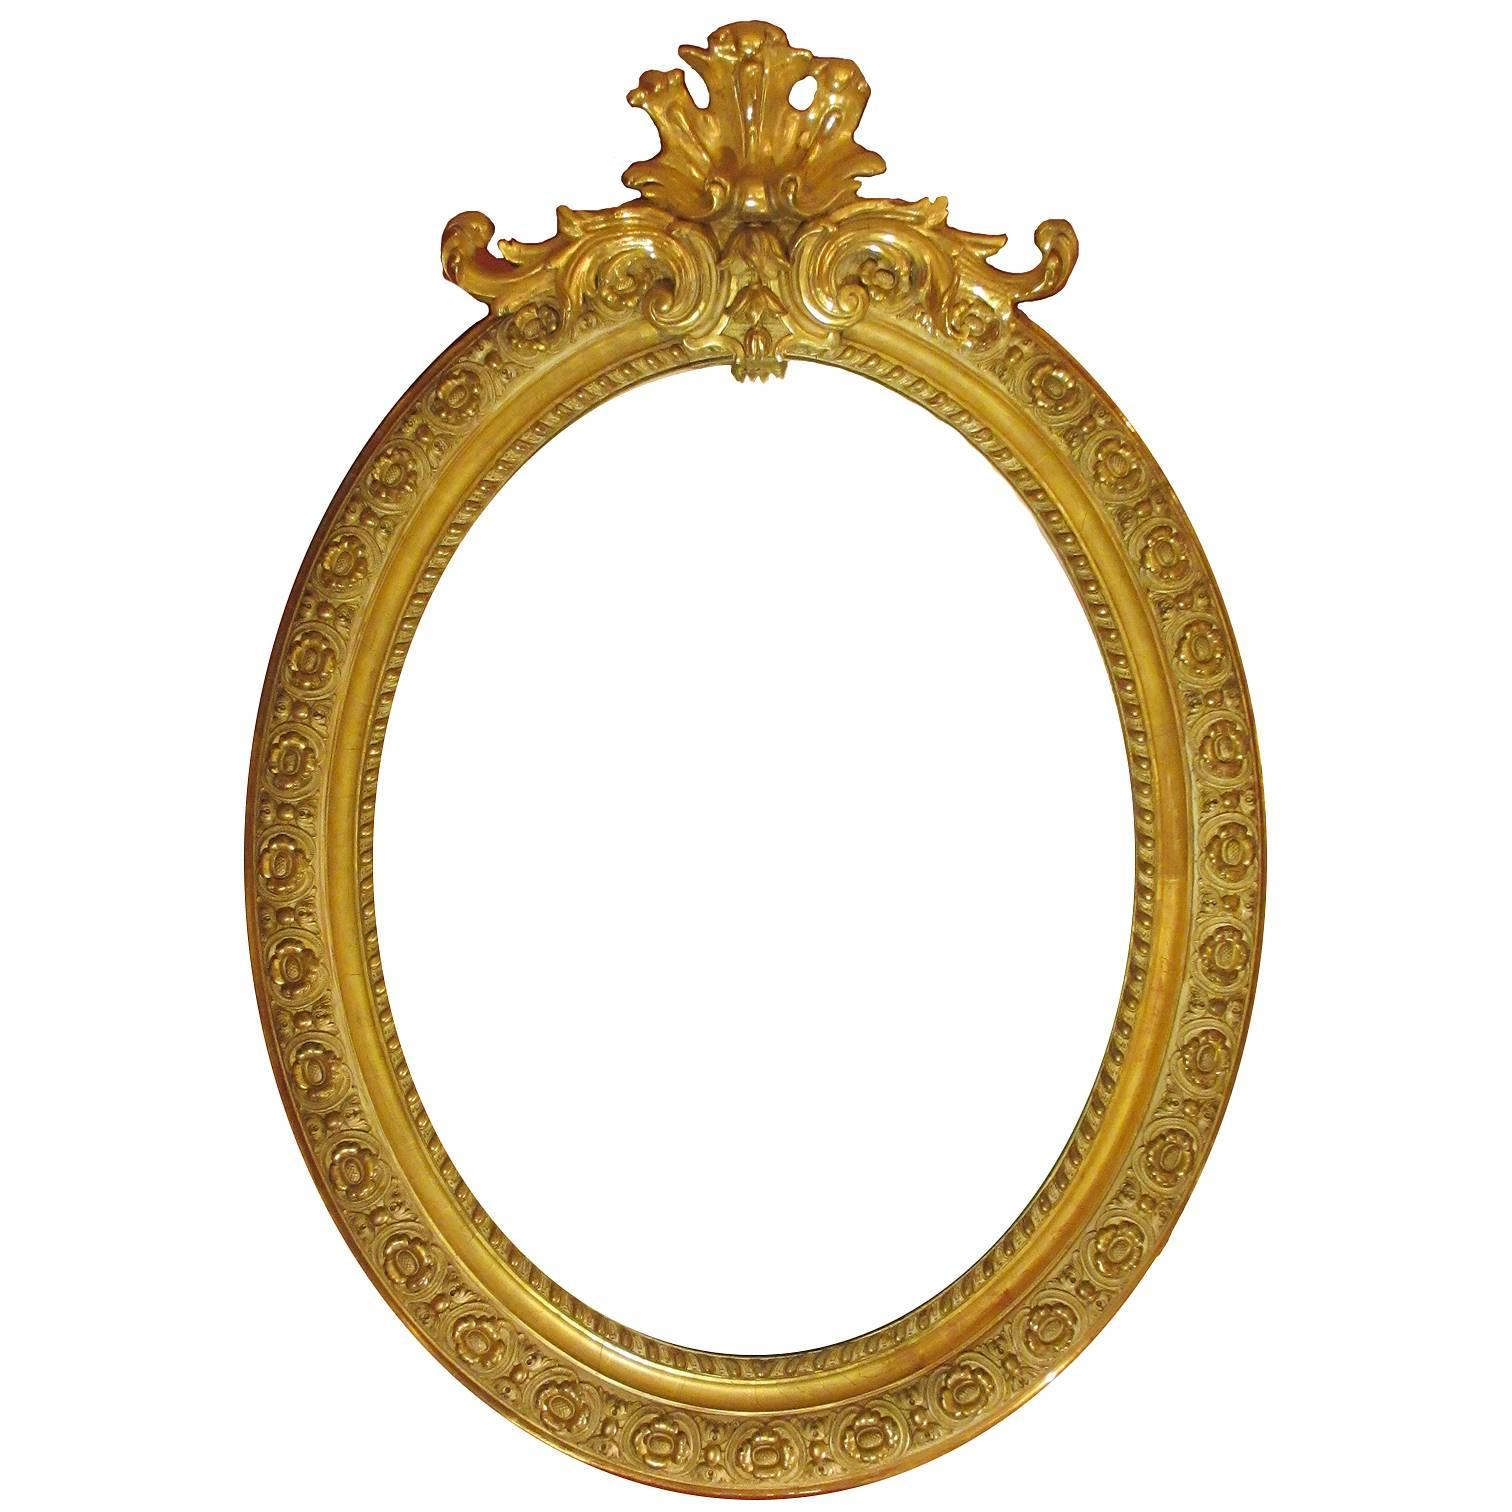 French 19th Century Louis XVI Style Giltwood and Gesso Carved Oval Mirror Frame